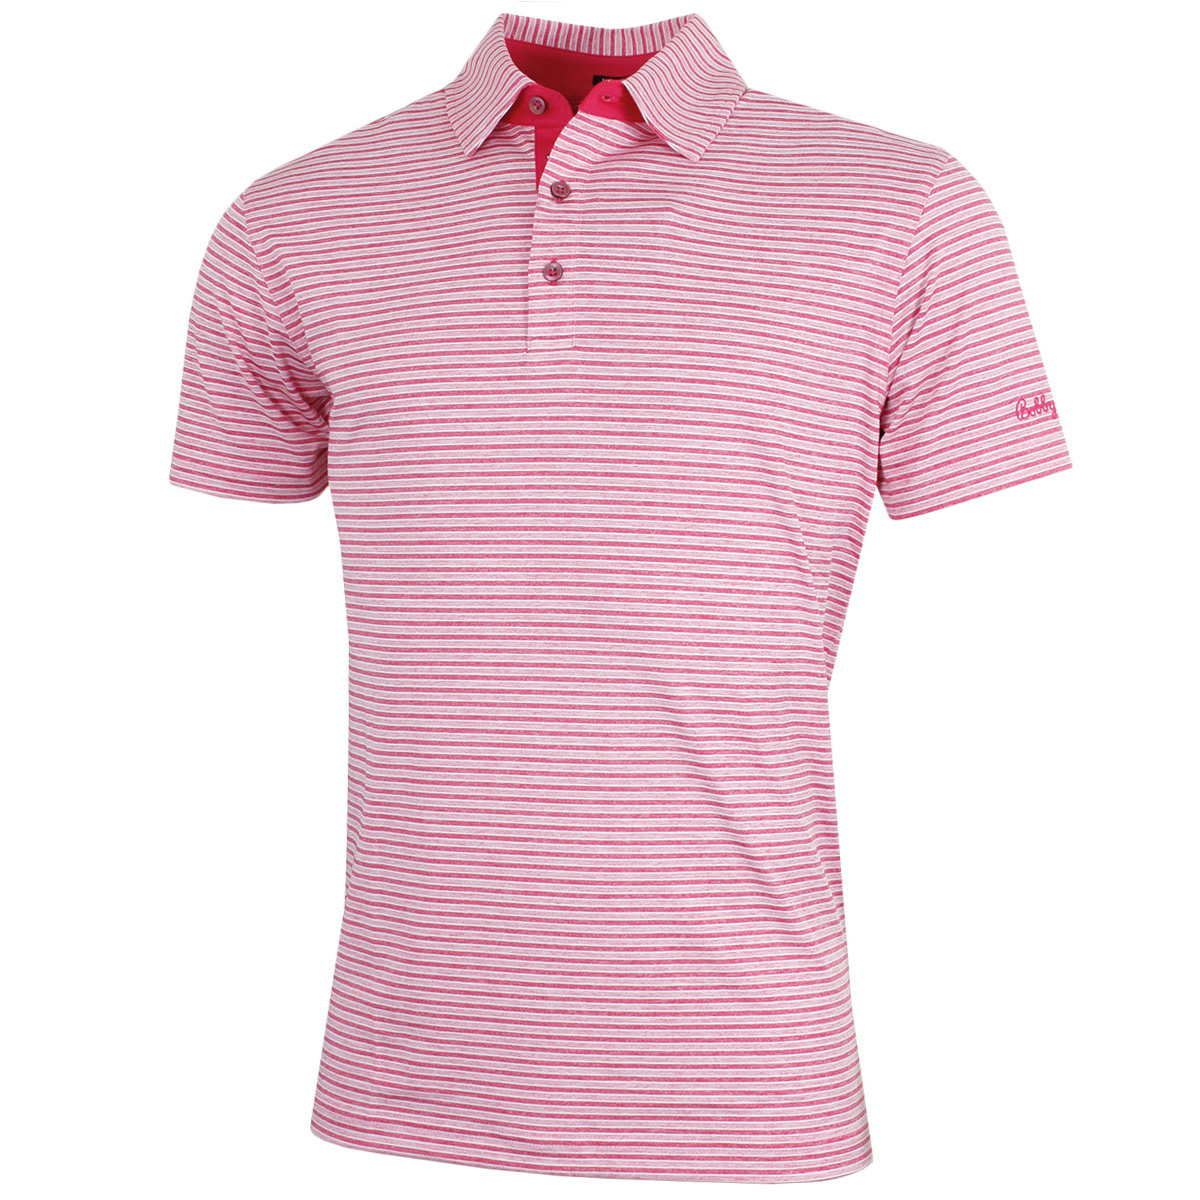 Bobby-Jones-Hombre-XH20-Sutton-Camisa-Polo-Golf-Rayas-71-sin-Mangas